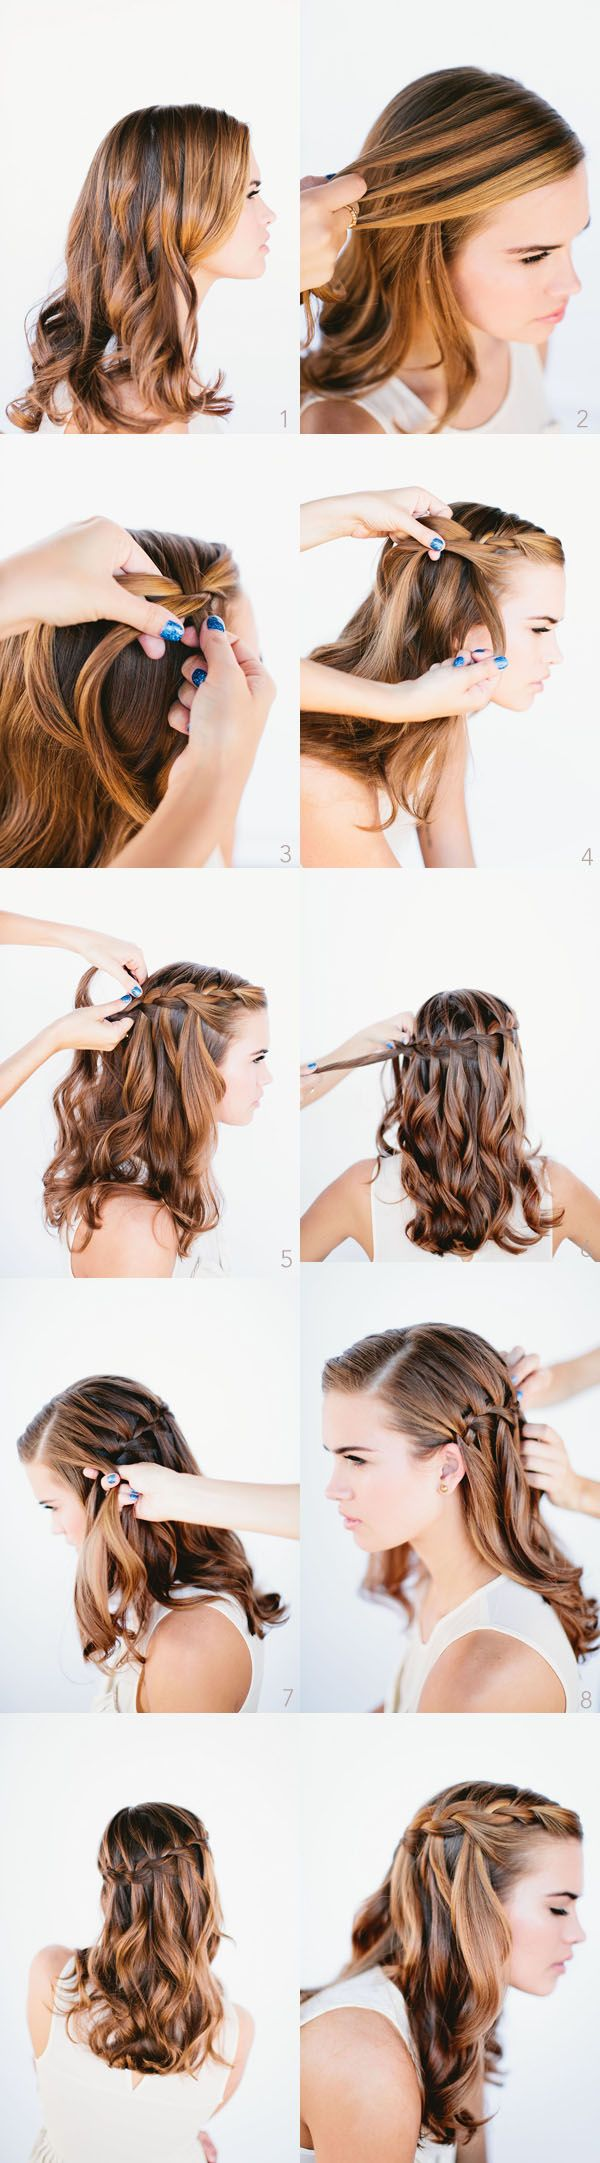 The 11 Best Braid Tutorials